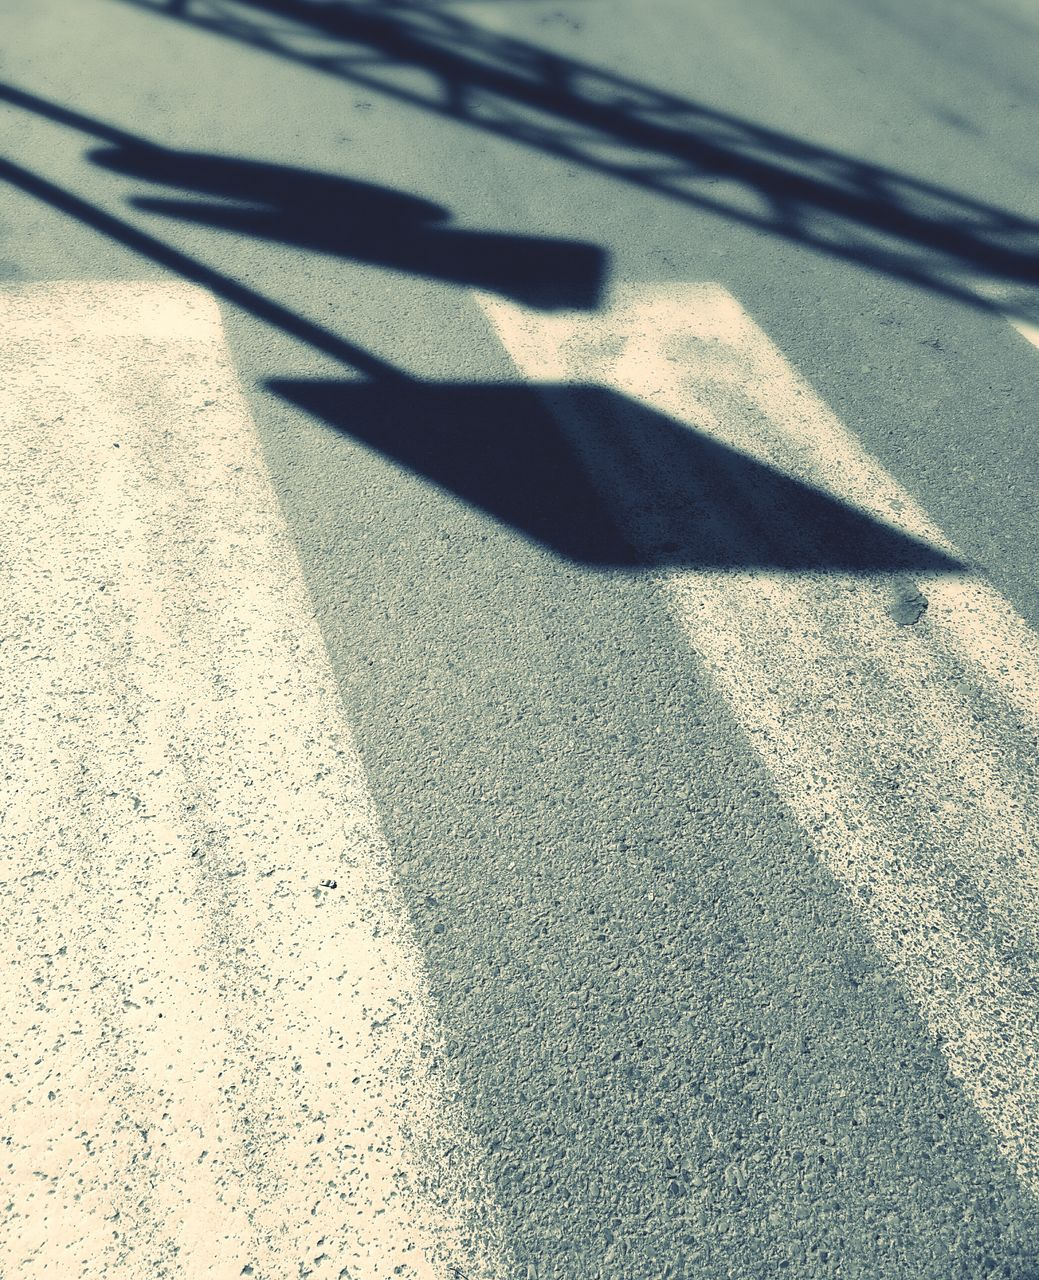 Shadow Of Road Signs On Zebra Crossing